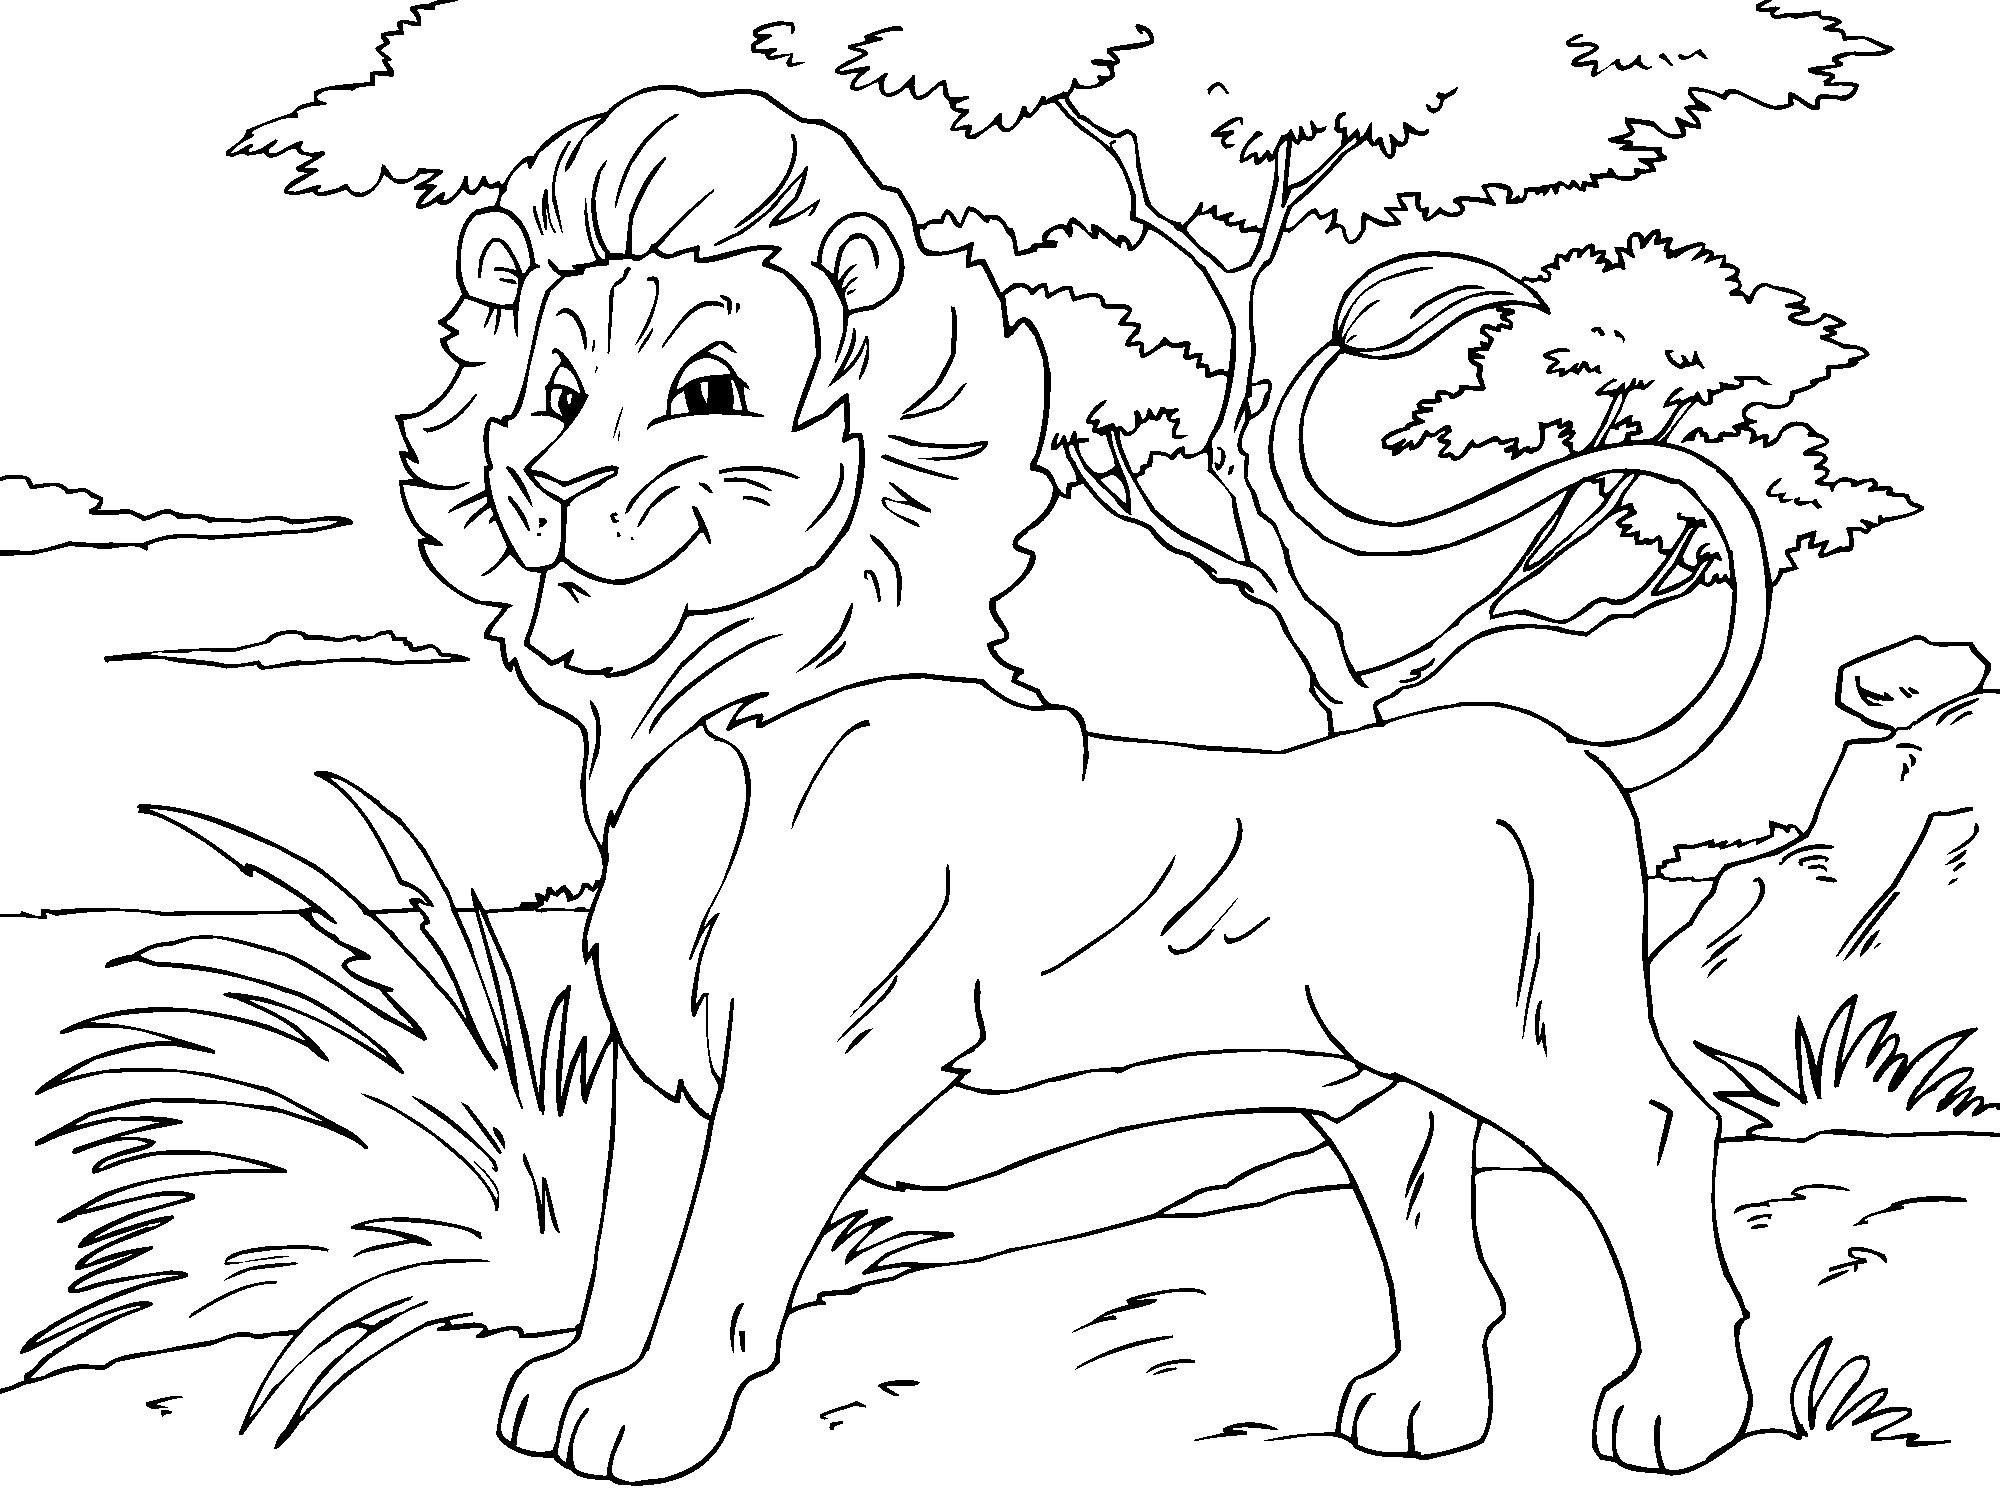 color therapy coloring pages lion king | Lion king - Animal Coloring pages for kids to print & color